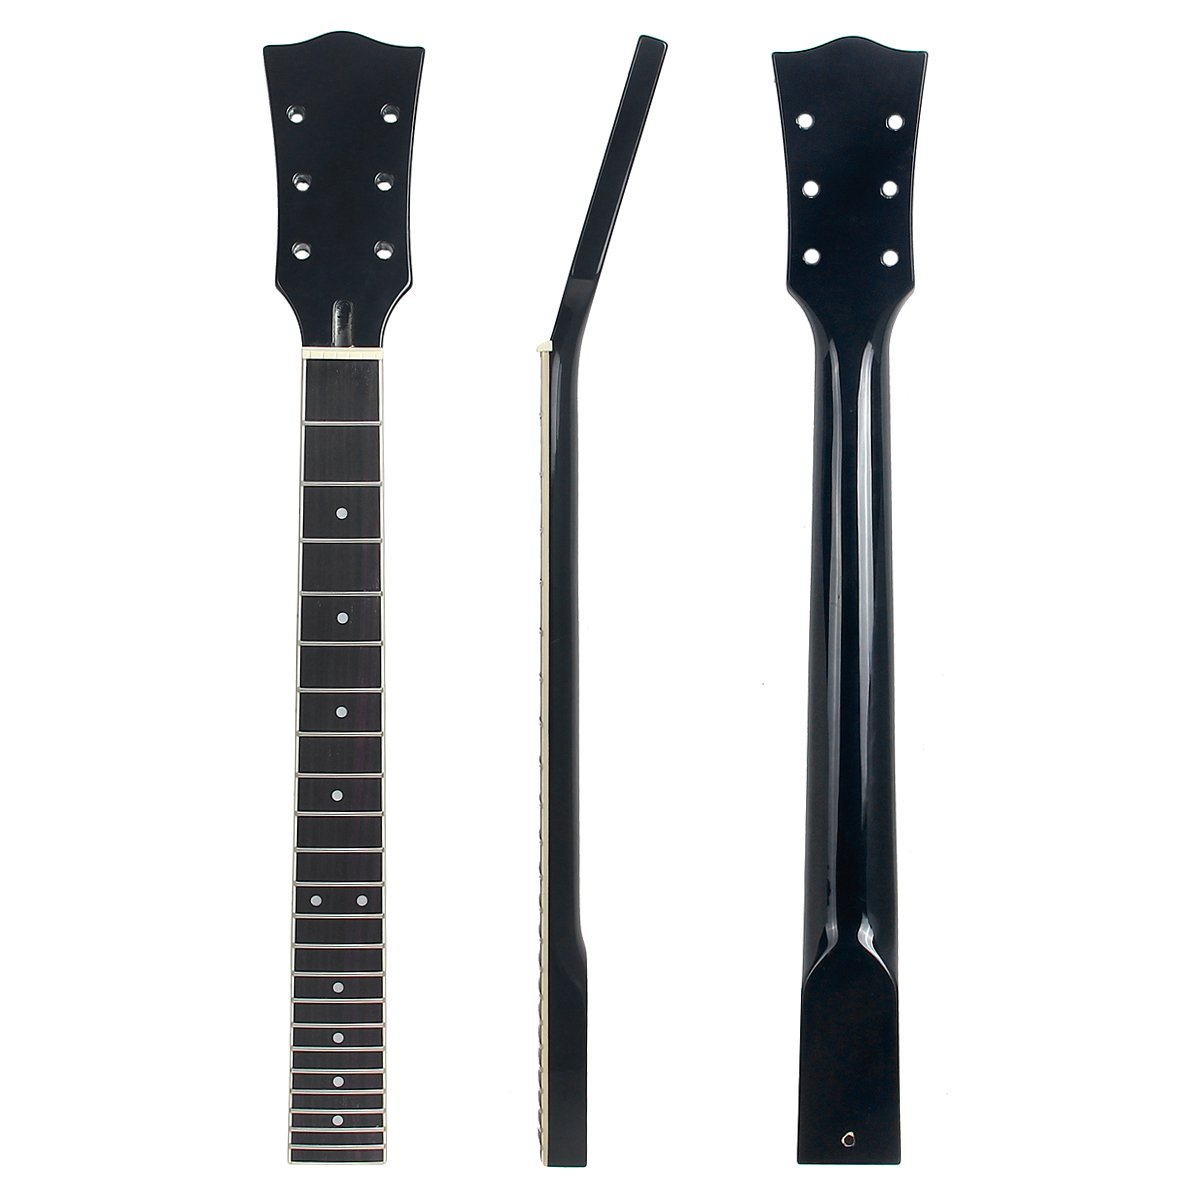 22 Frets LP Guitar Neck Mahogany Rosewood Solid Black Finish For Les Paul replacement